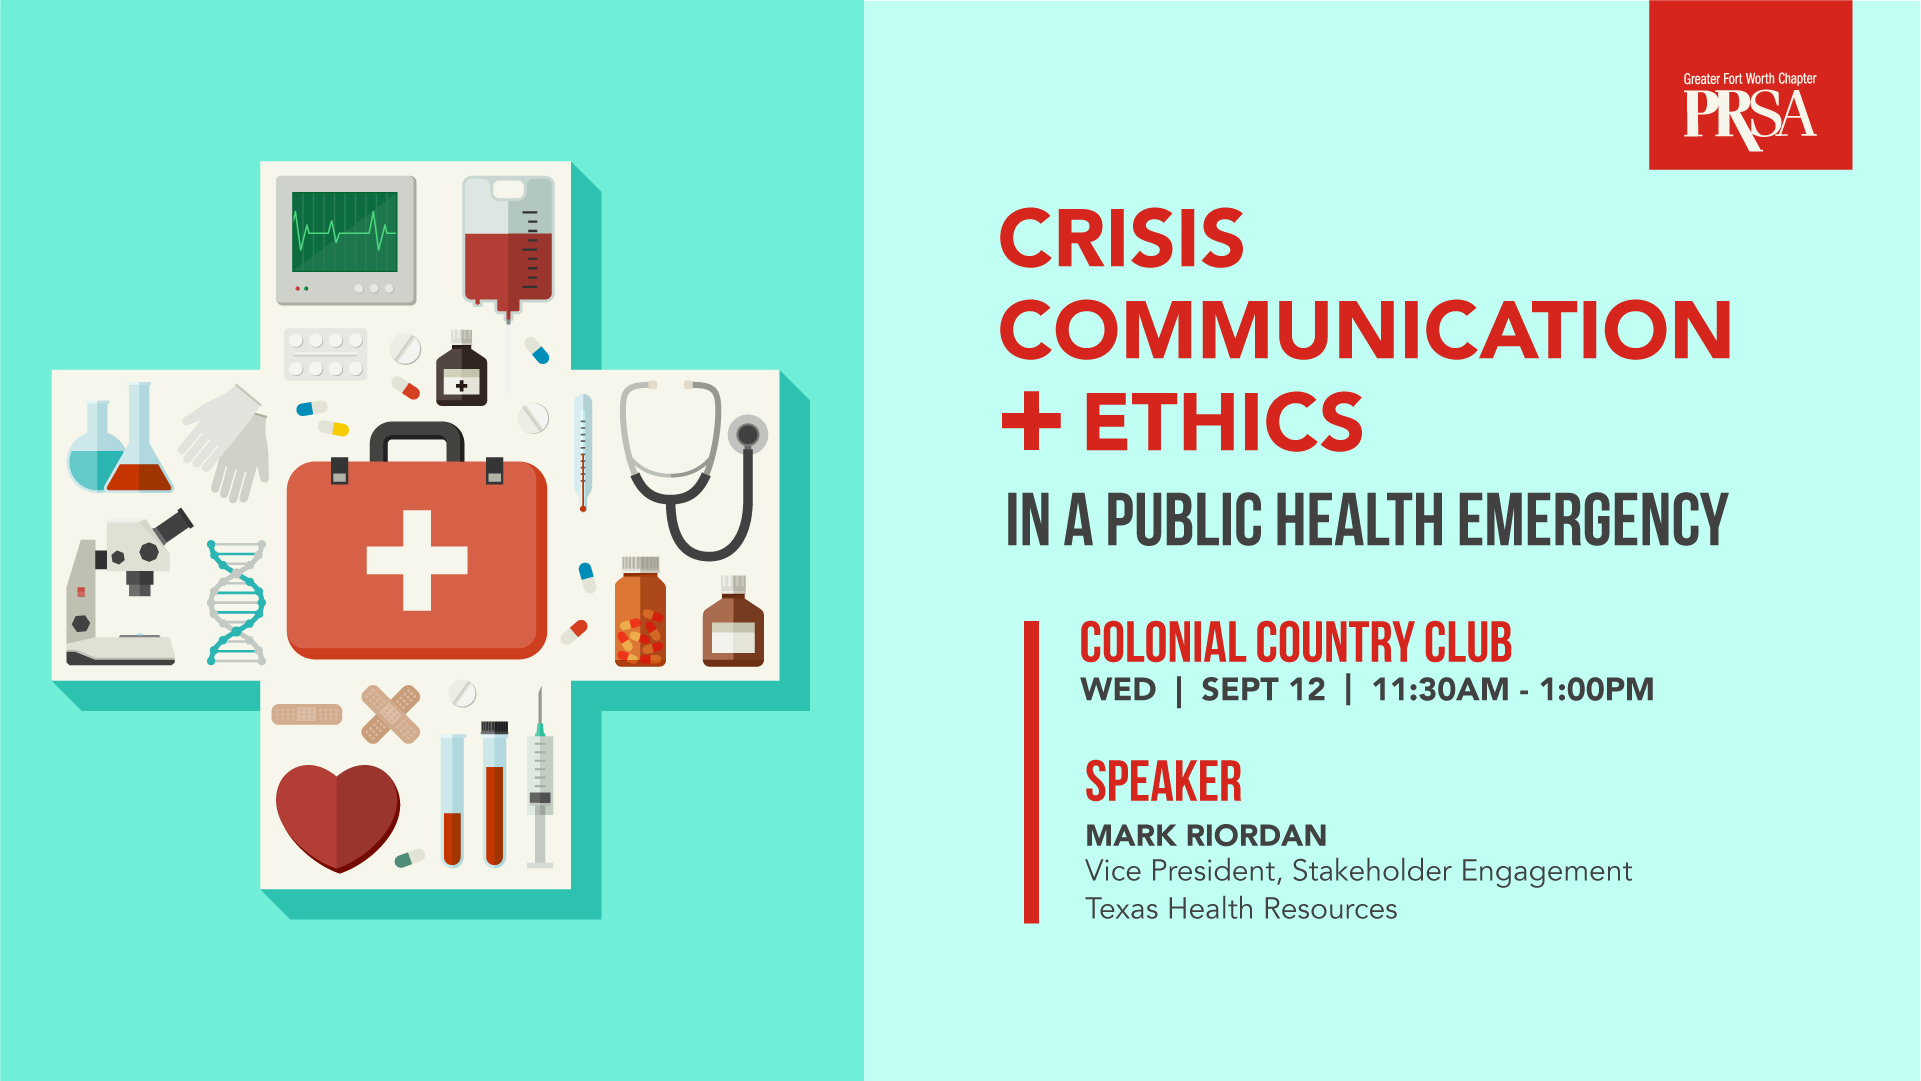 Crisis Communication and Ethics in a Public Health Emergency